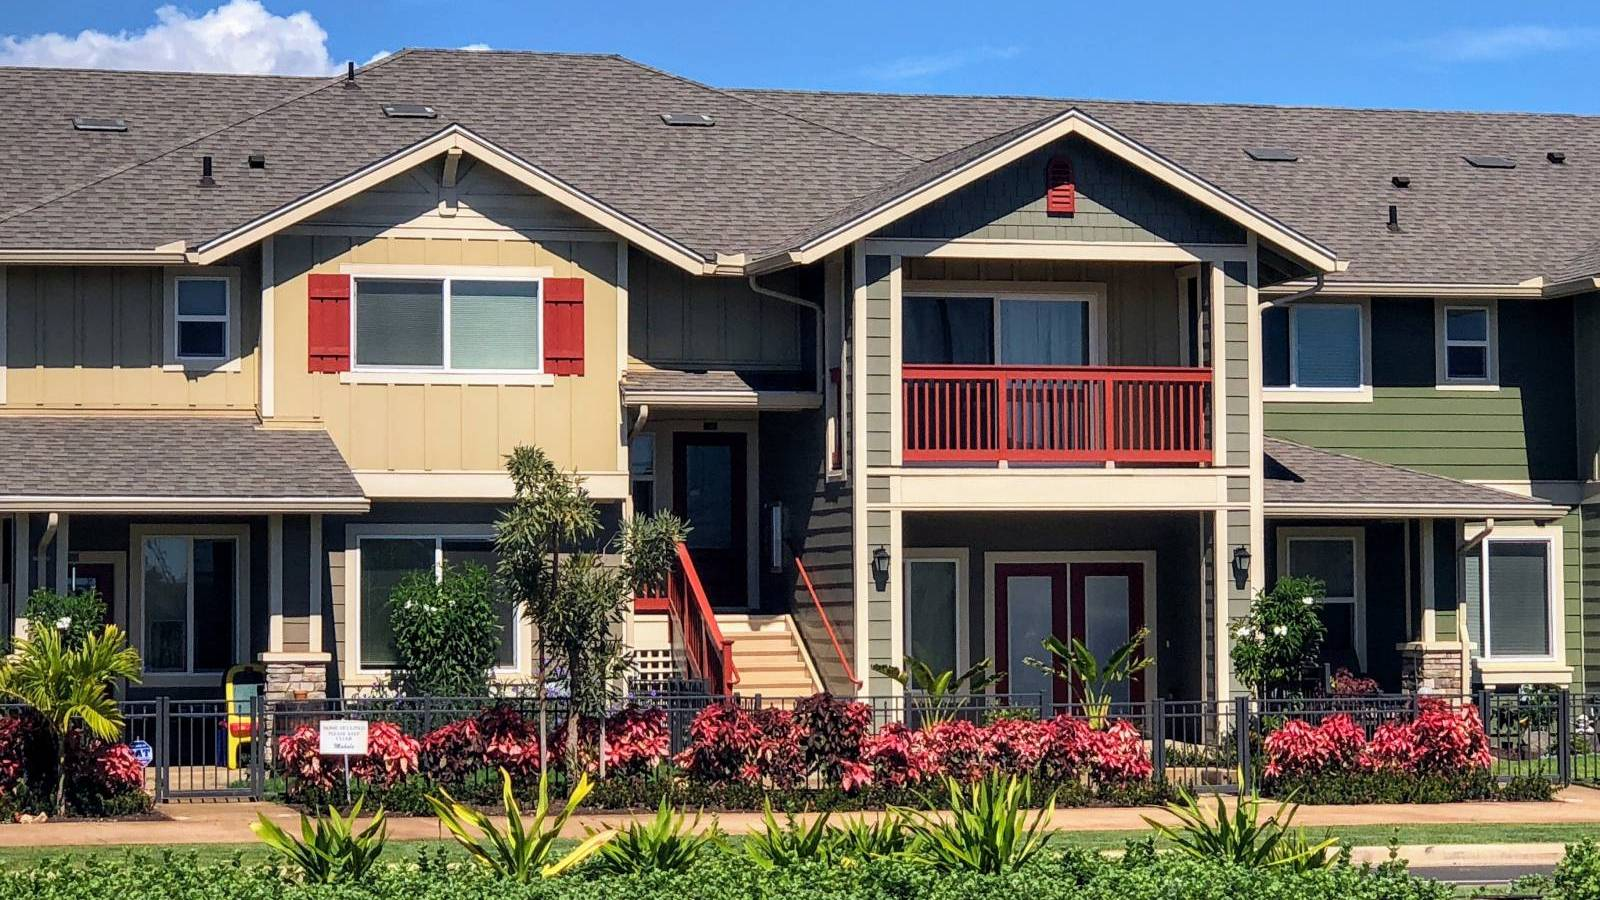 townhome at Hoopili